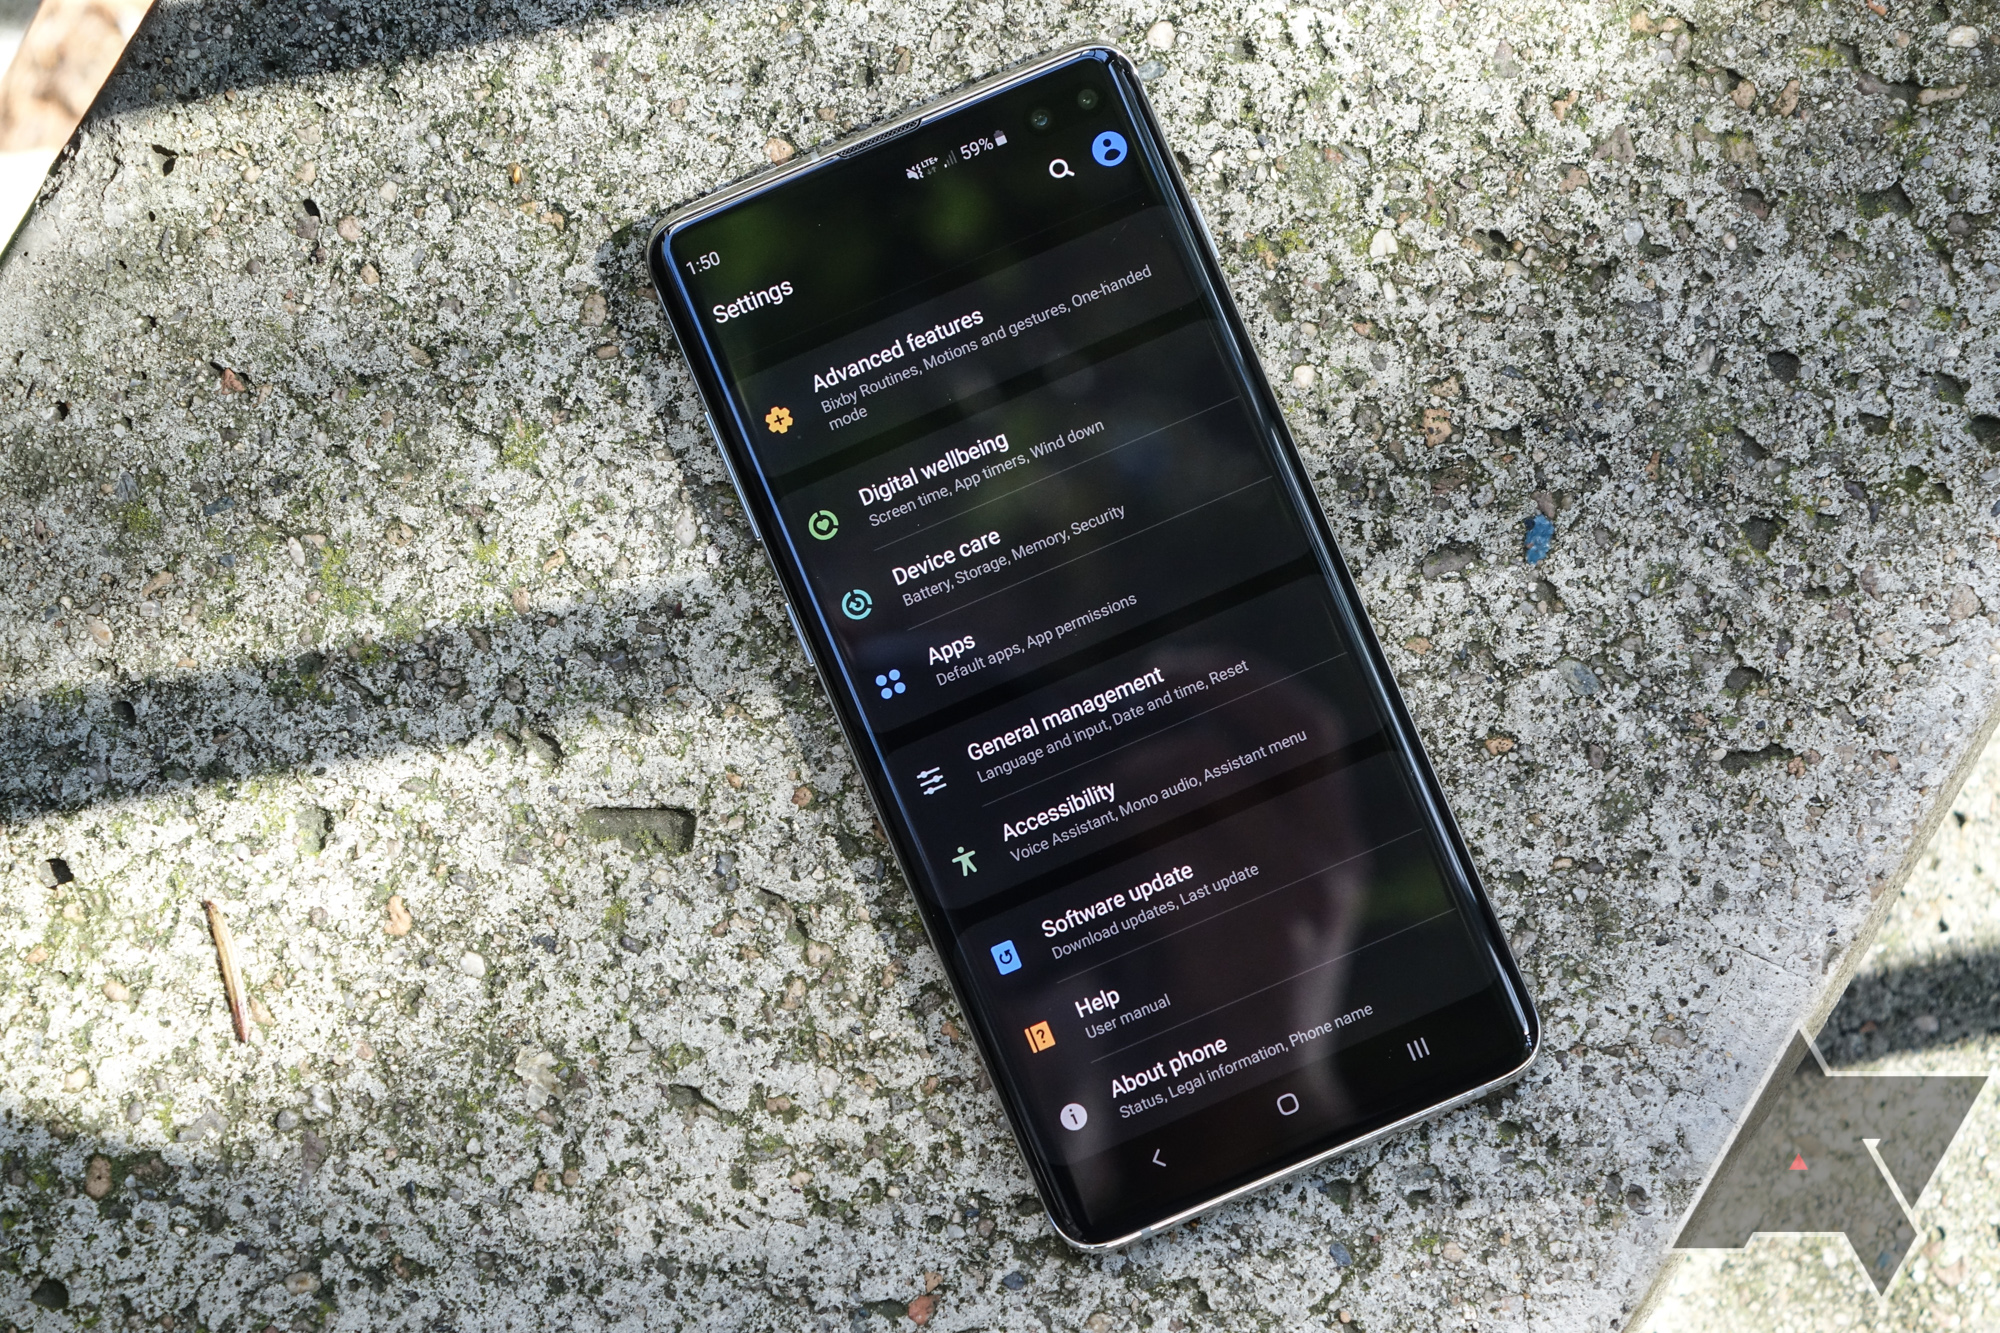 Galaxy S10+ appears to suffer major LTE signal and